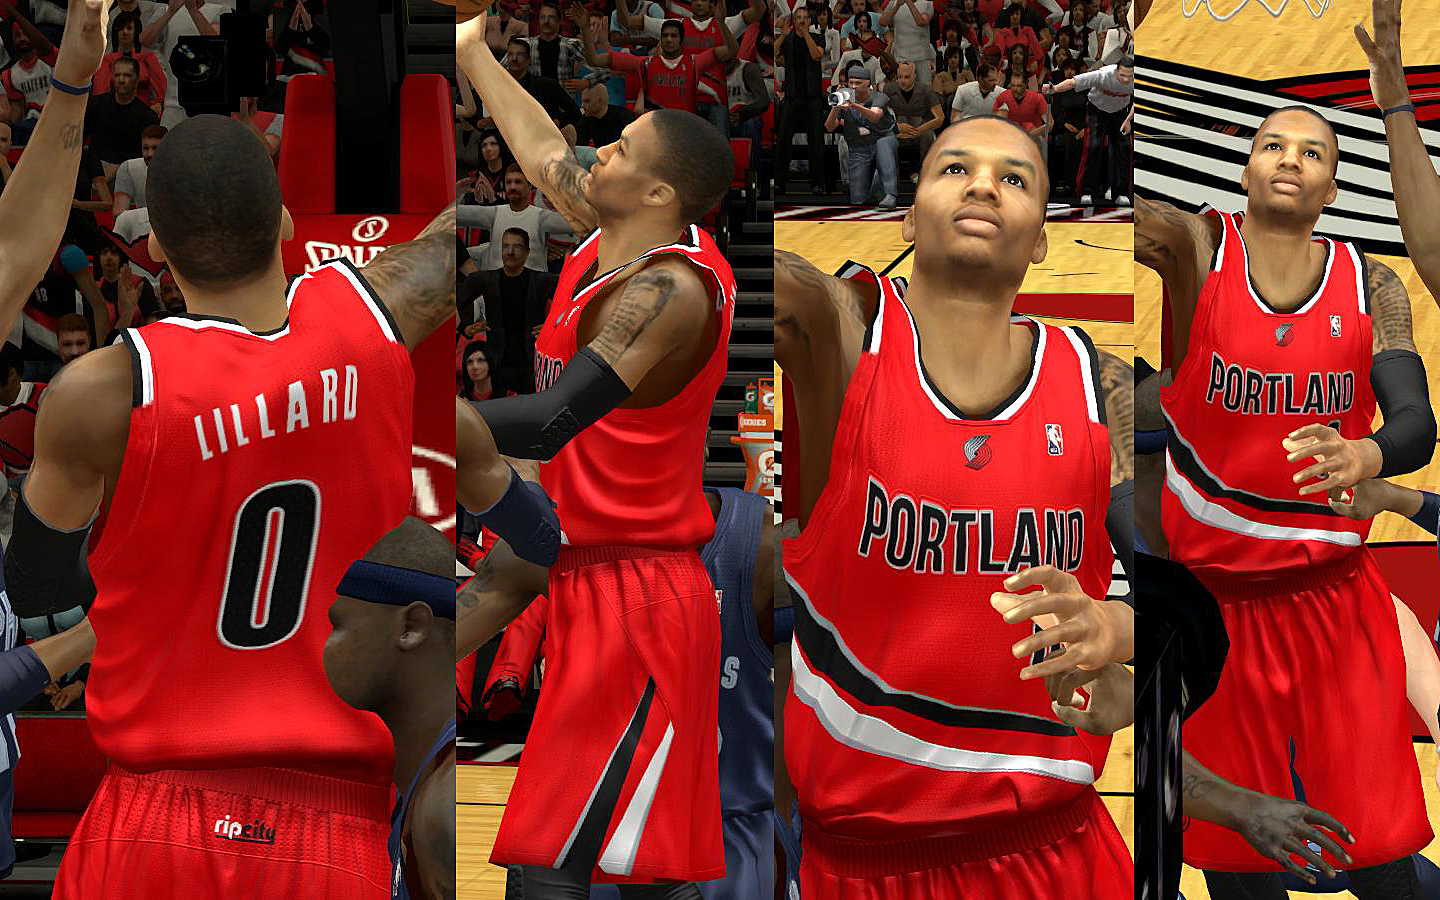 Portland Trailblazers Jersey with Crowd Fixed